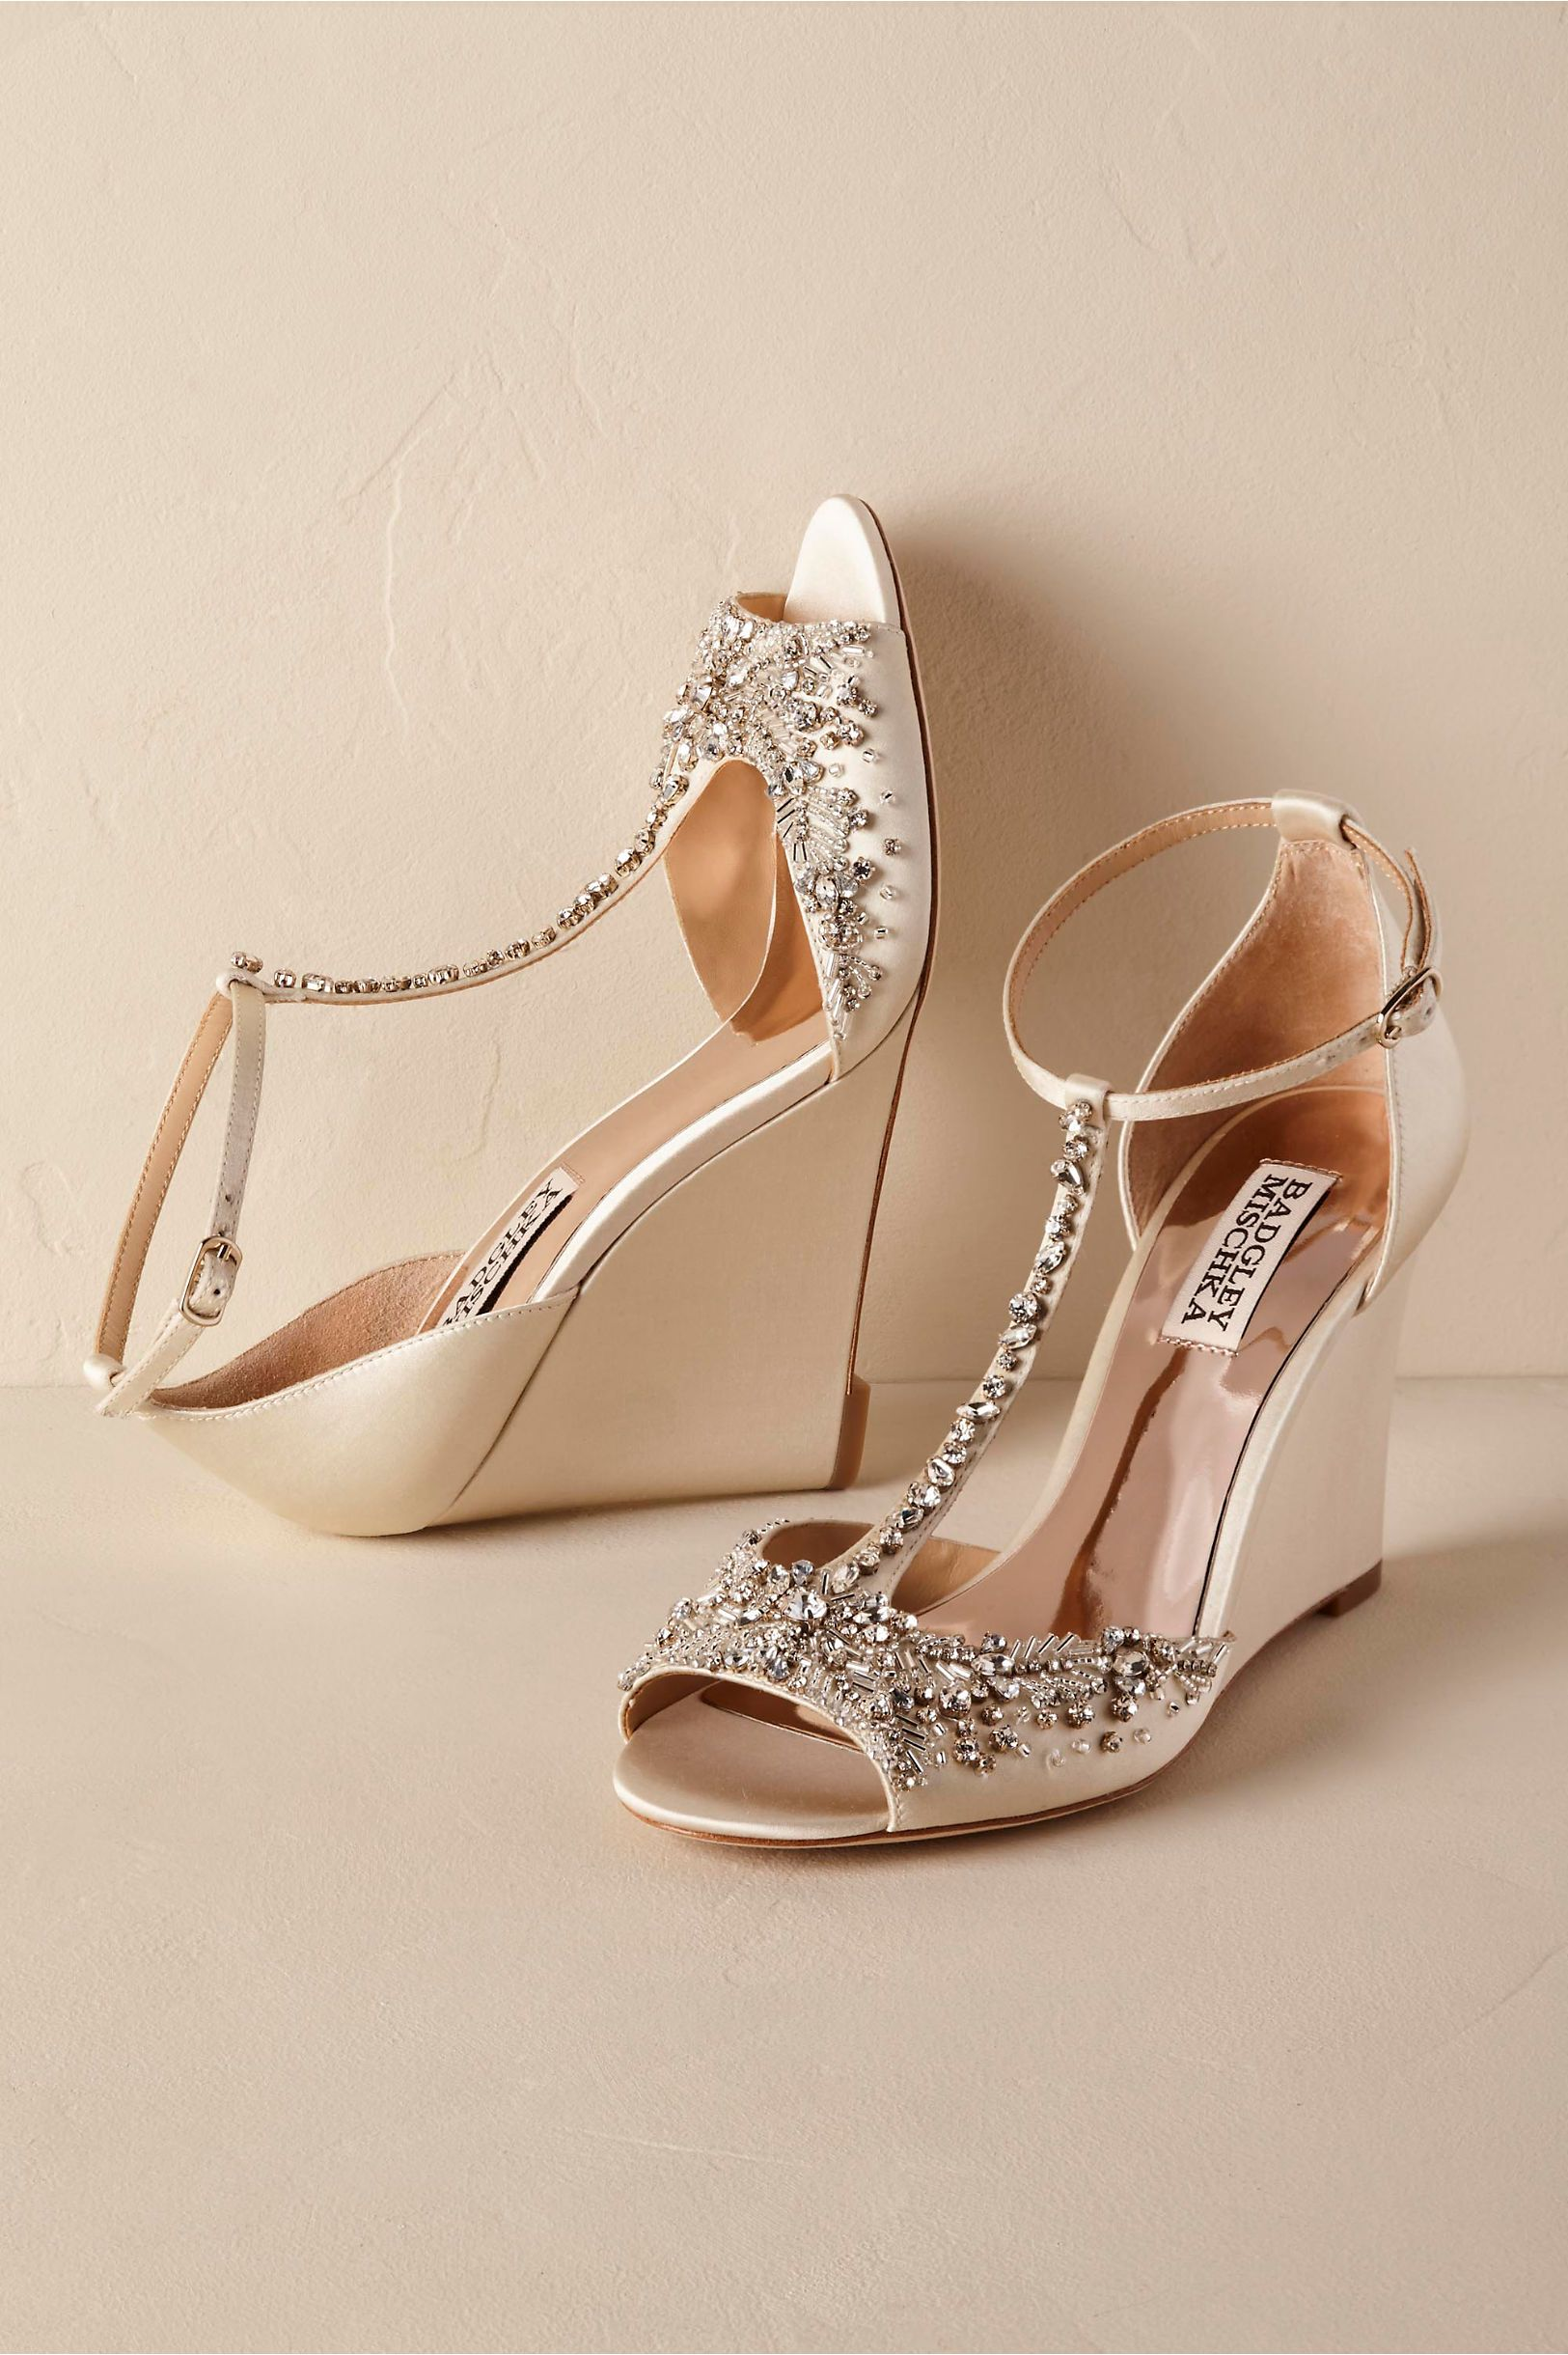 7630dc699 ... wedding shoes and more! BHLDN s Badgley Mischka Chiara Wedges in Ivory